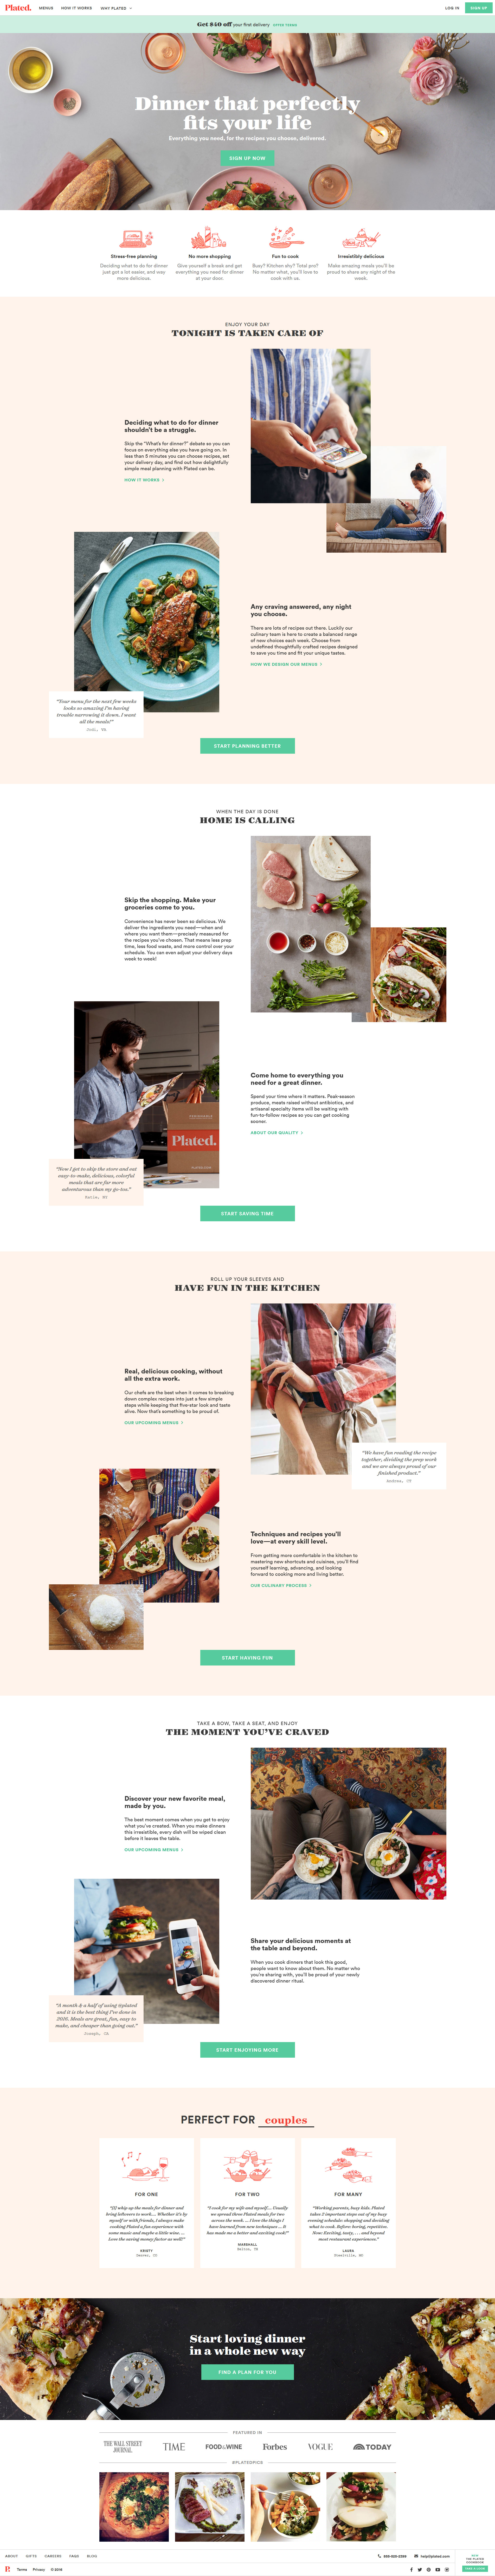 Plated landing page design